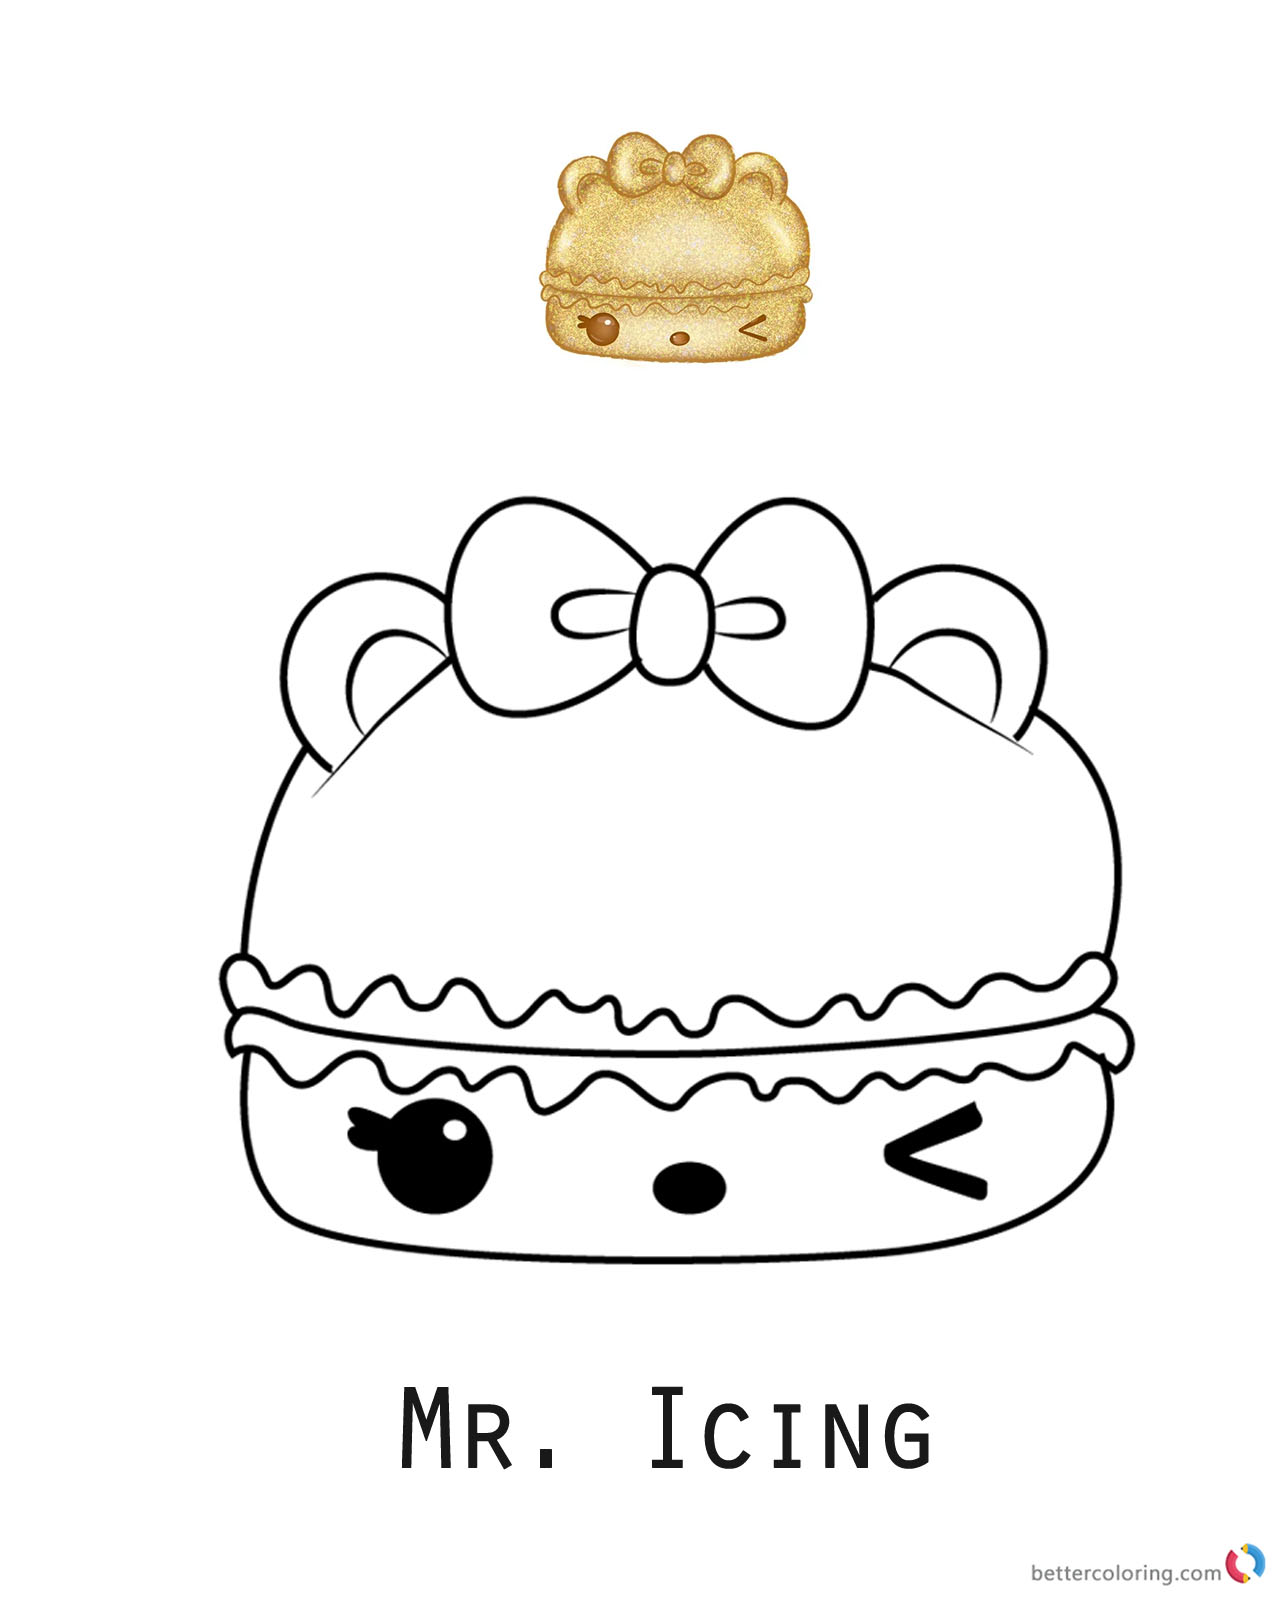 Mr icing num noms coloring pages series 2 free for Num noms coloring pages free